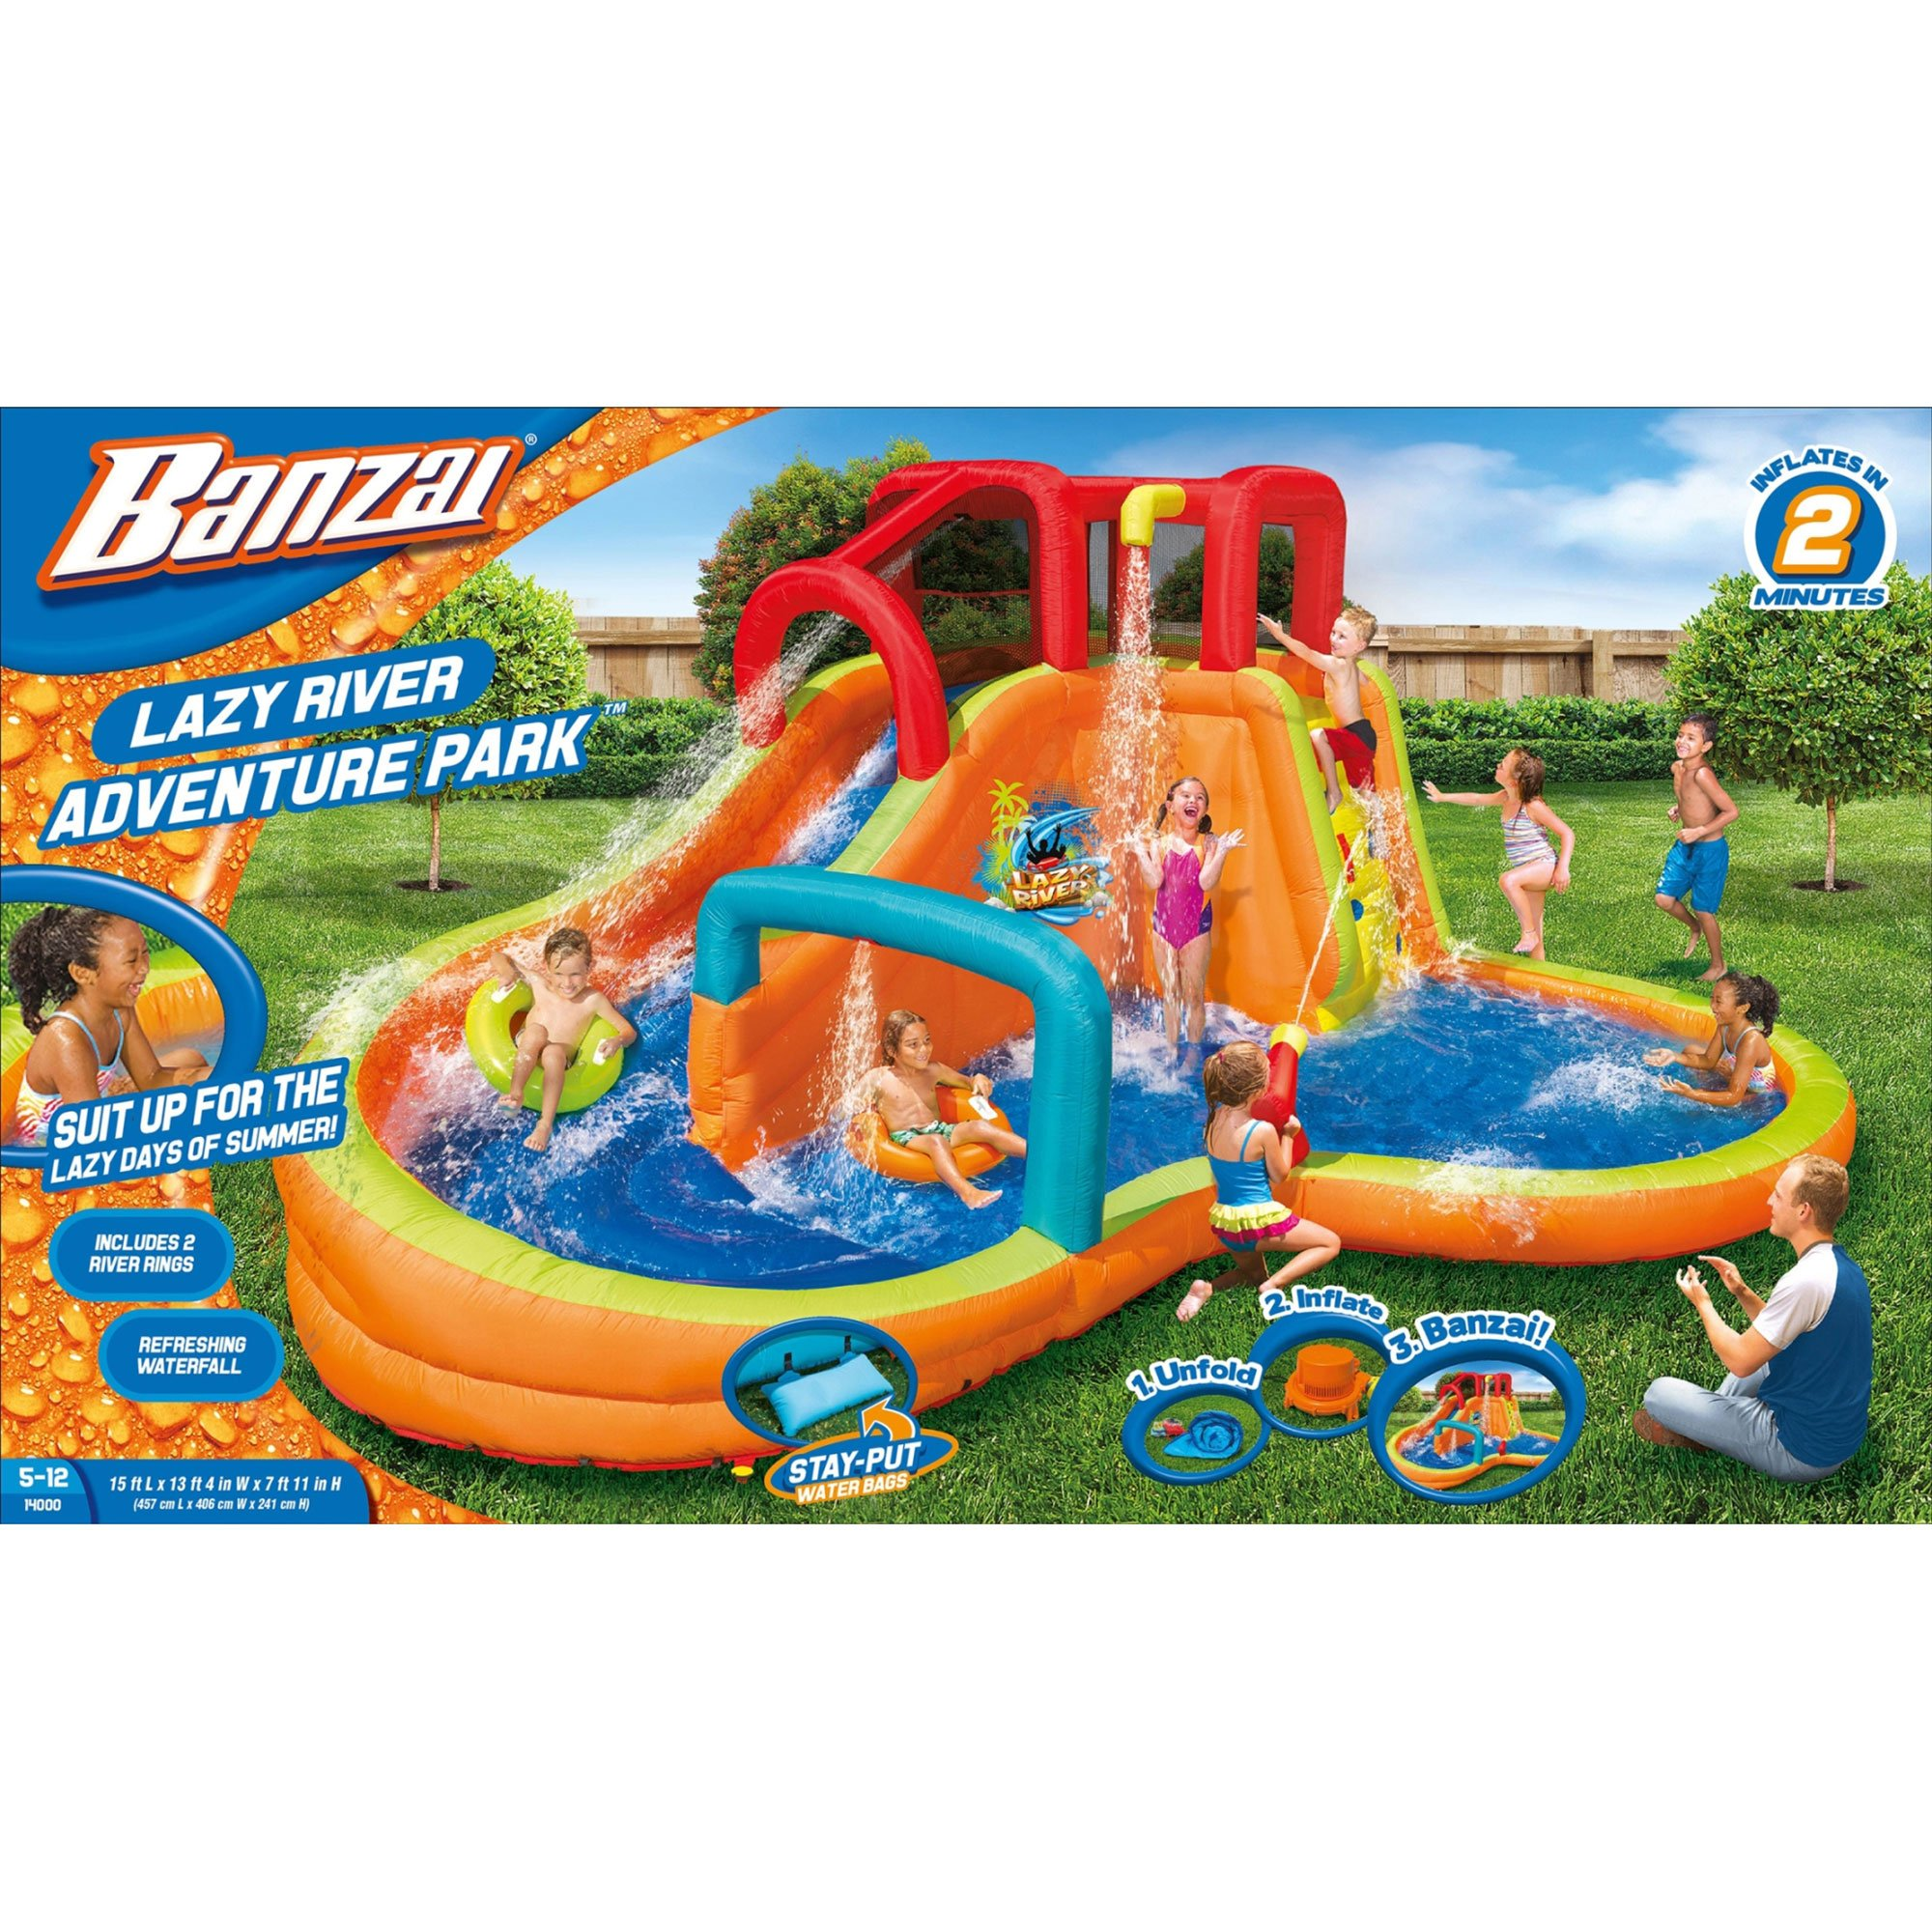 BANZAI Kids Inflatable Outdoor Lazy River Adventure Water Park Slide and Pool by BANZAI (Image #6)